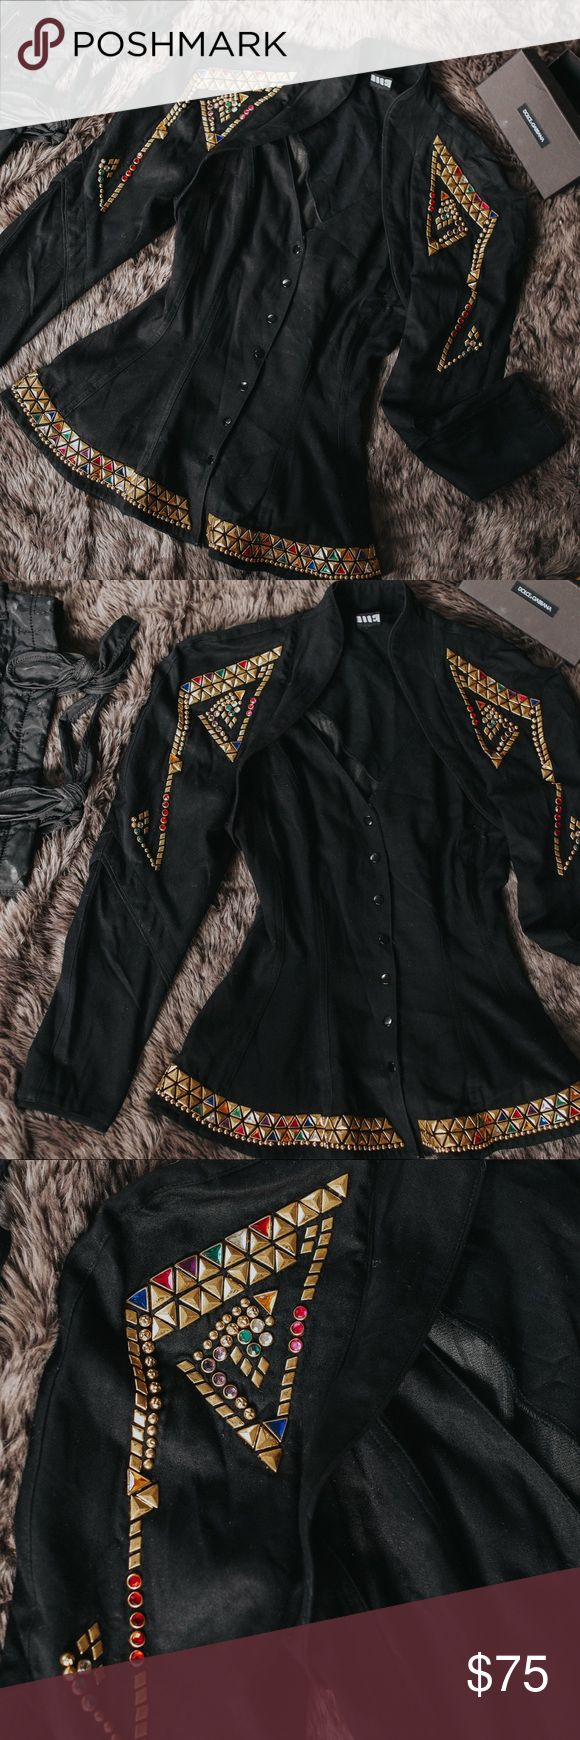 Vintage 90s Studded and Jeweled Peplum Top WHAT?! This top is so sick. I'm pretty sure that Janet Jackson wore this on her rhythm nation tour 😂. This top is in perfect condition and is such amazing quality! Use this as part of a costume for a 90s night or for Halloween. Go as Janet Jackson or Paula Abdul, or any other iconic 90s female. Or just rock this top out if you are a super fashionista! It would look so hot with a pair of skinny jeans and killer heels. Such an amazing top and I…